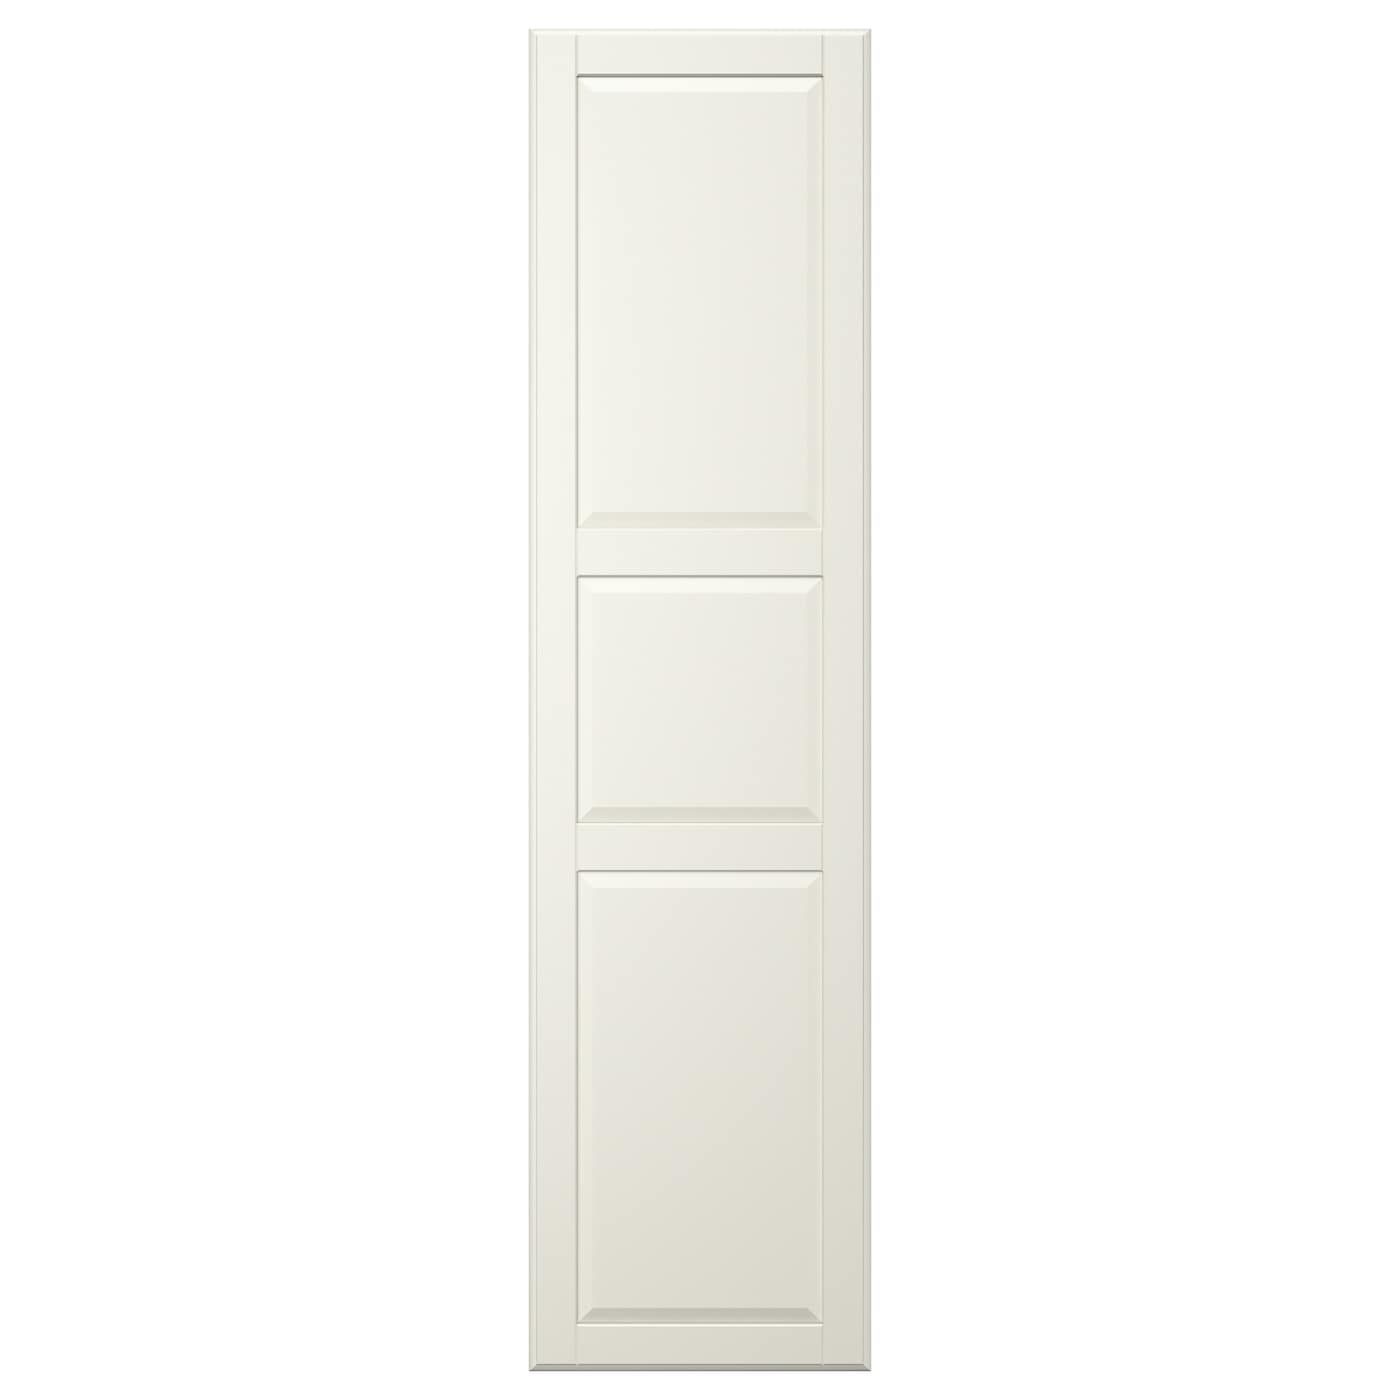 IKEA TYSSEDAL door with hinges 10 year guarantee. Read about the terms in the guarantee brochure.